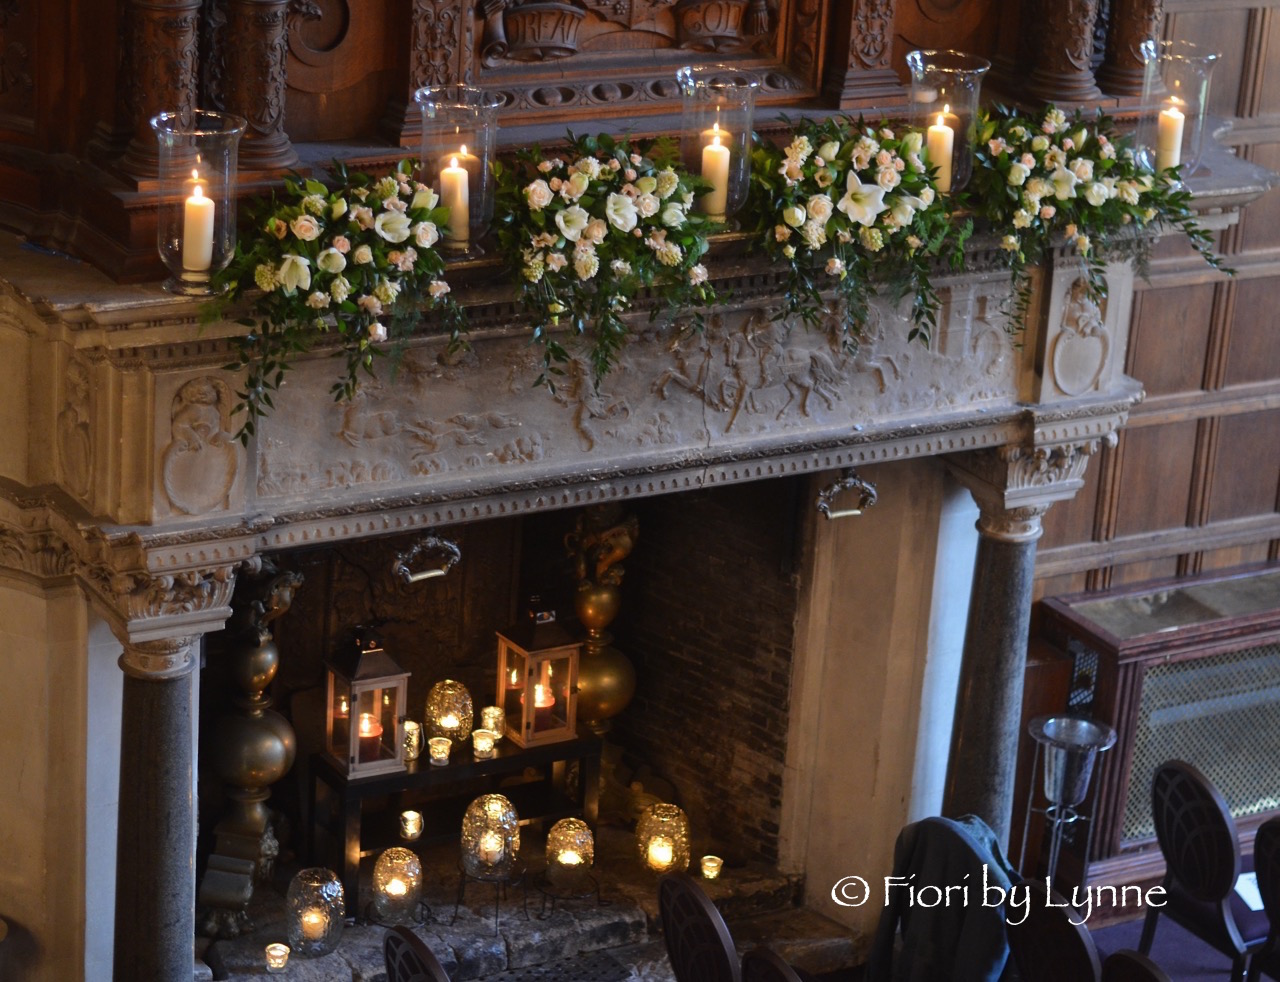 rhinefield-wedding-winter-mantle-flowerslanterns.jpg